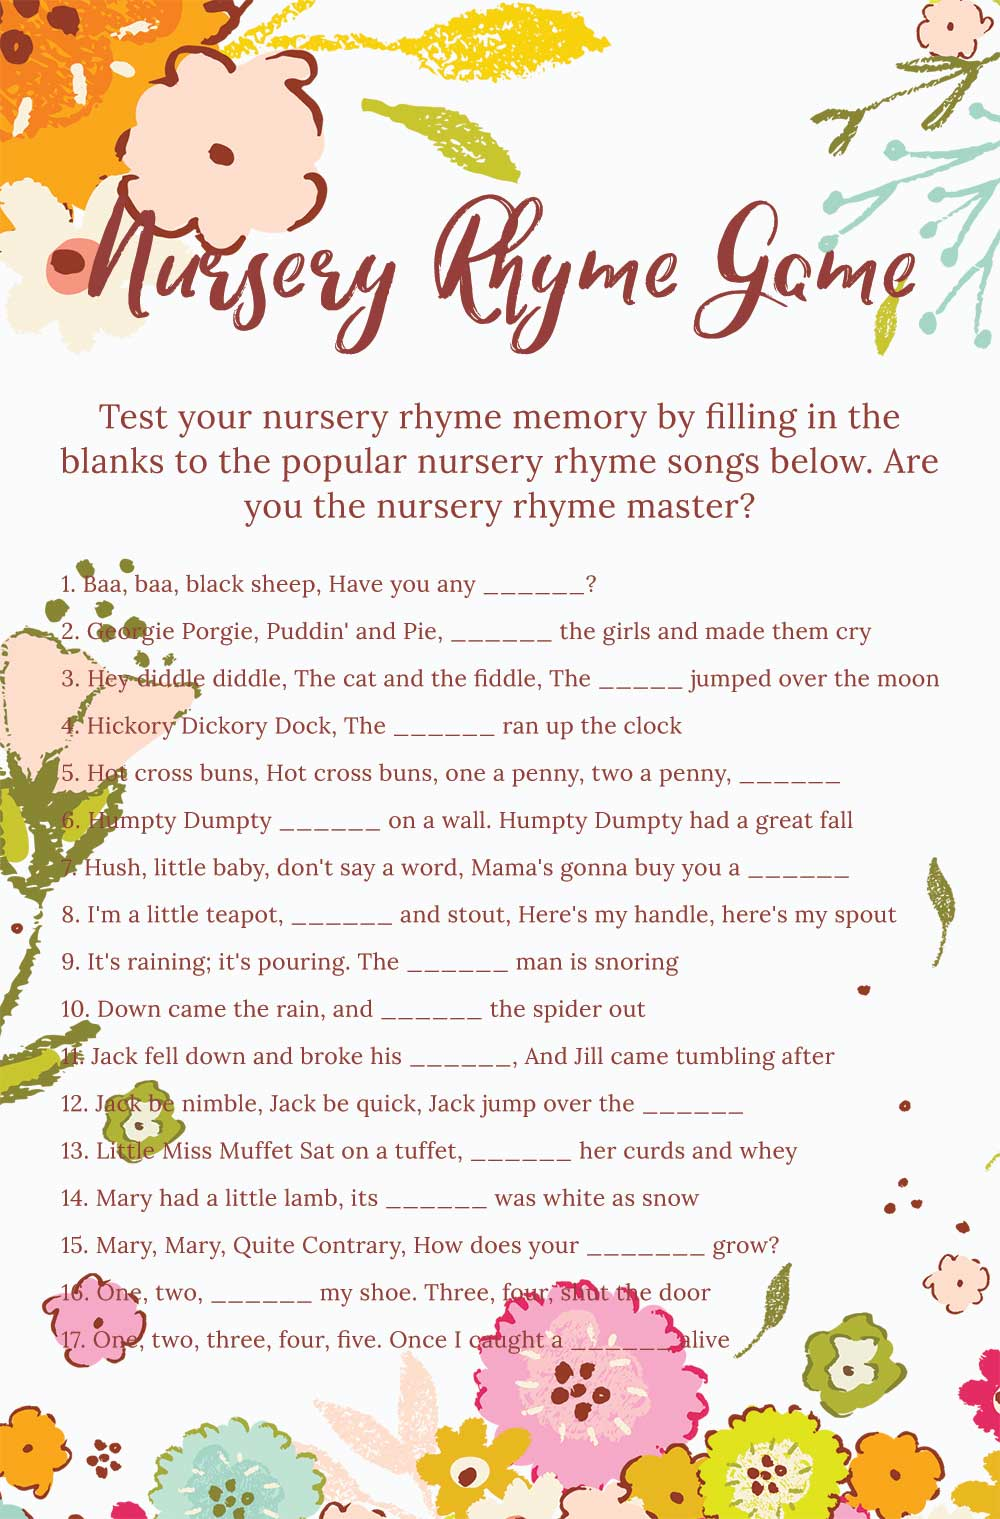 Nursery rhyme game - Spring theme